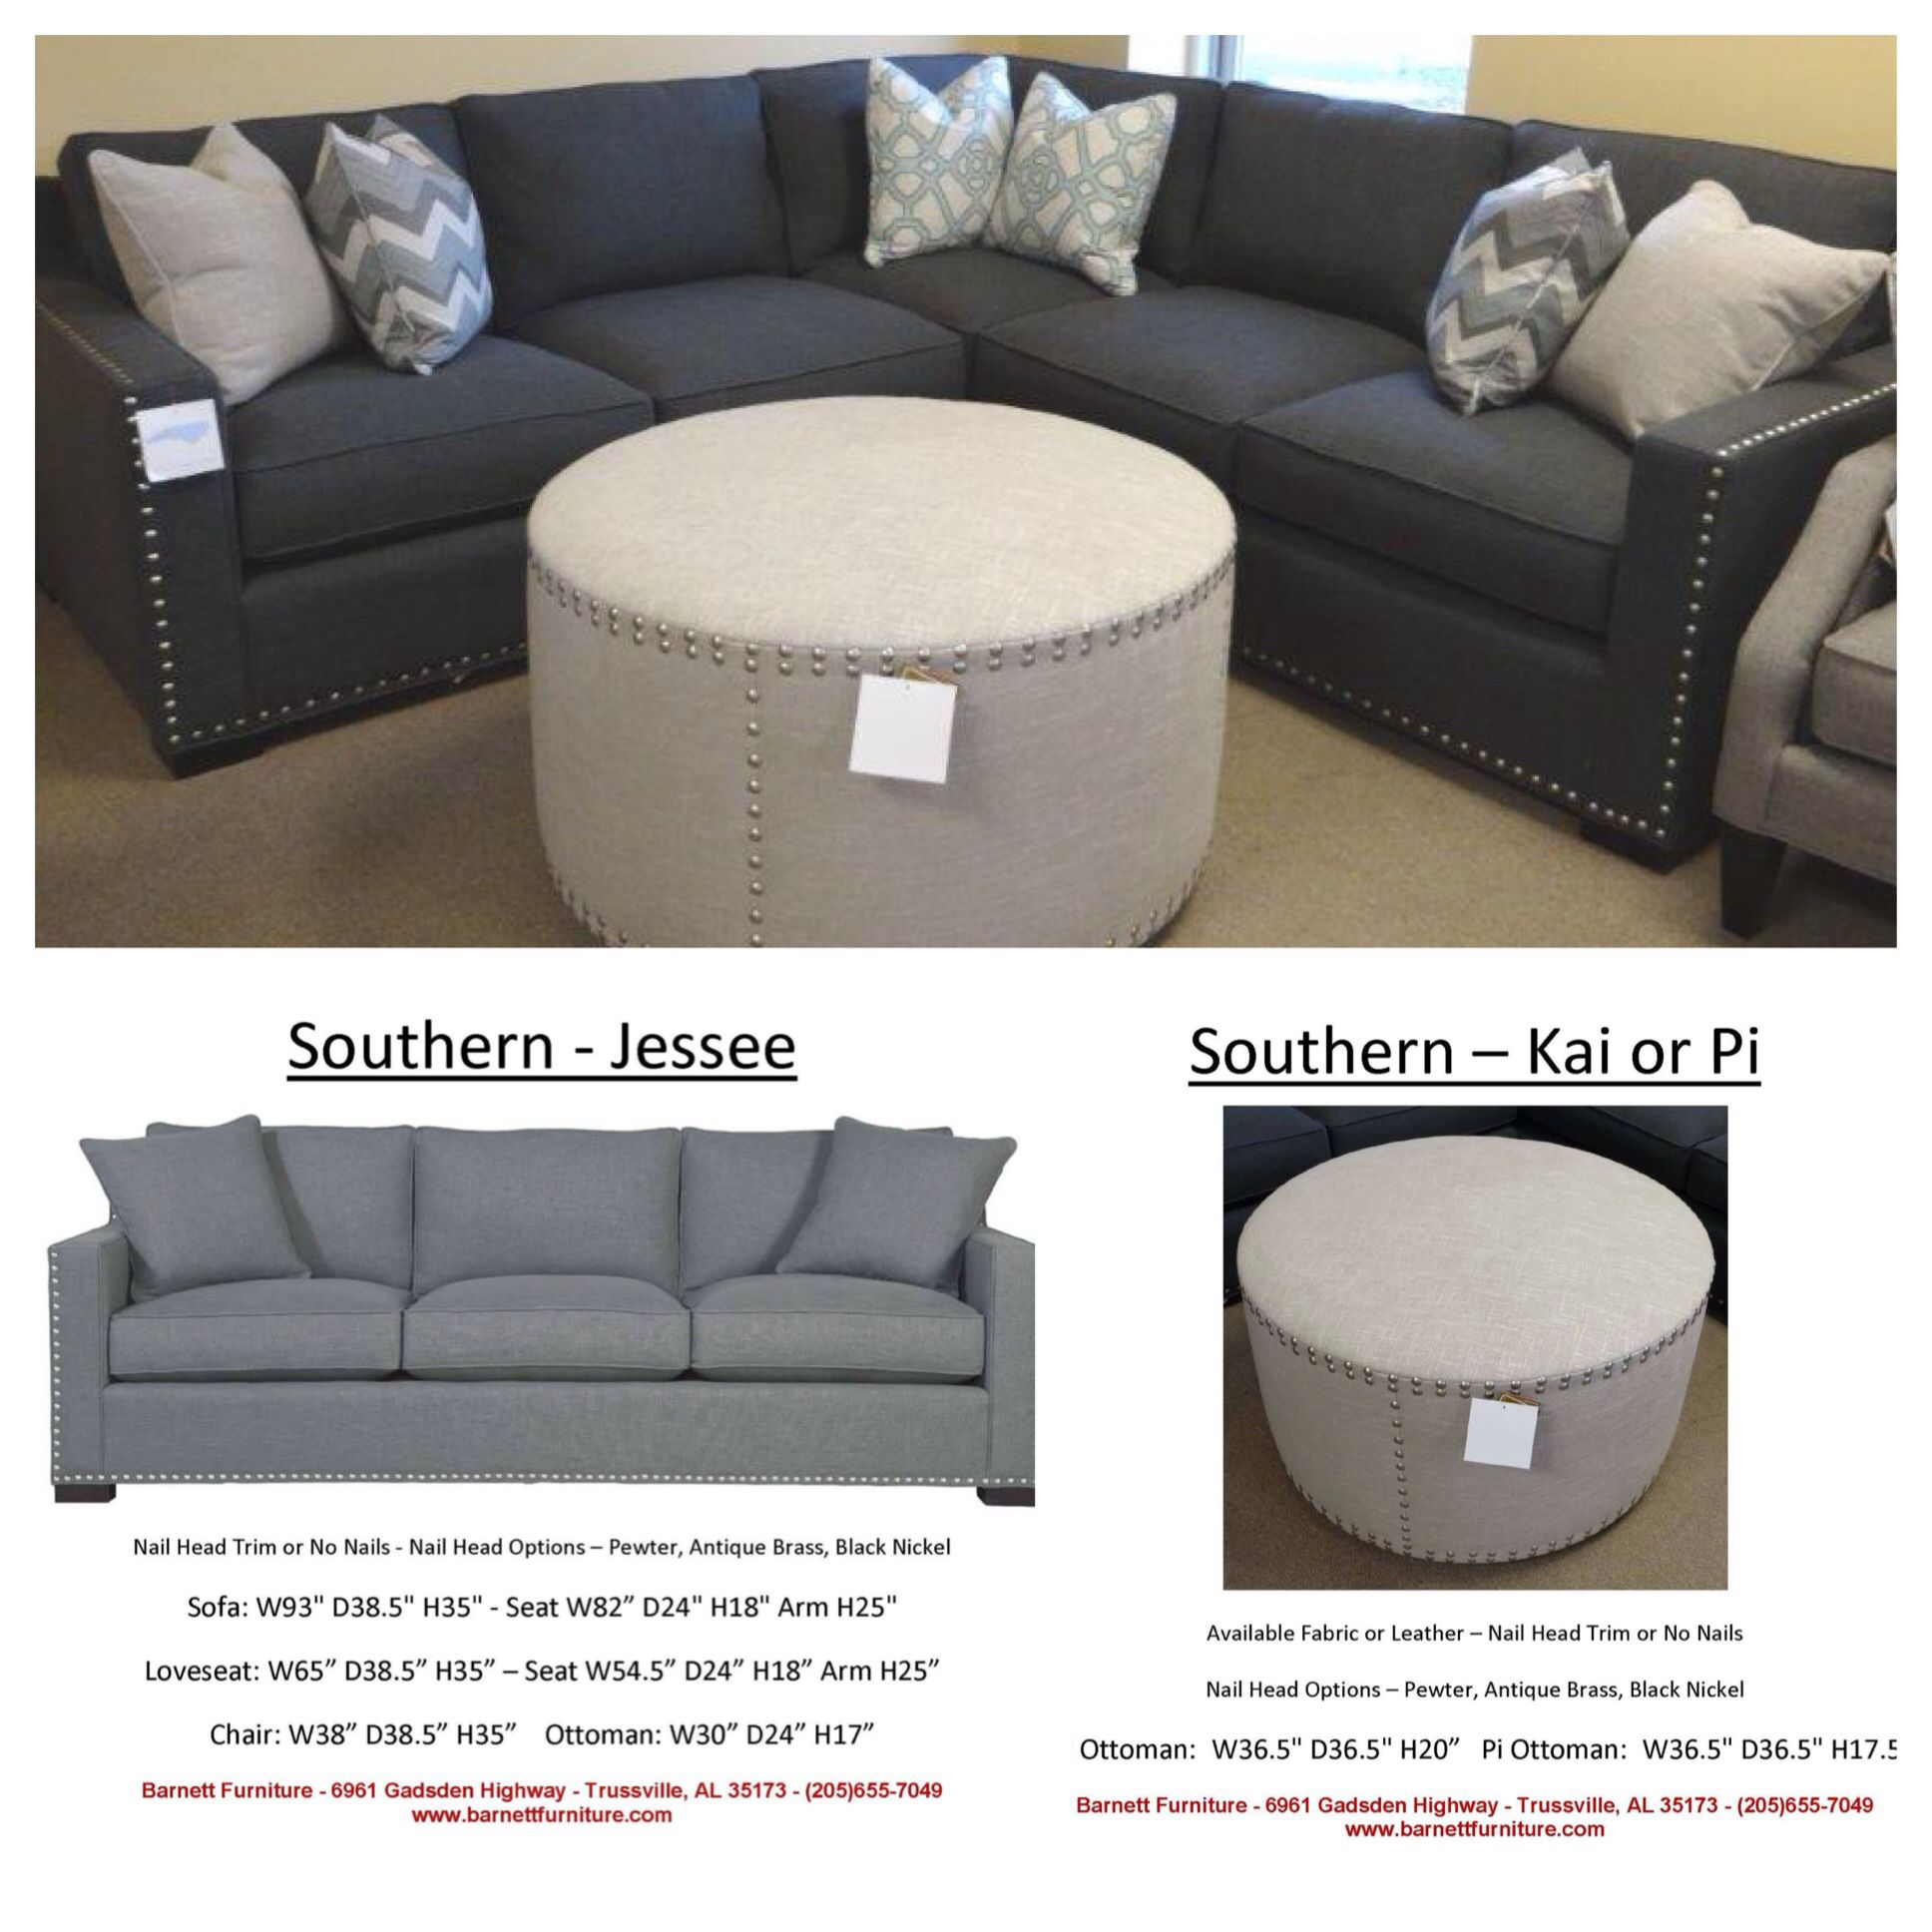 Attractive Southern Furniture   Jesse Sectional And Kai Ottoman. Jesse Sectional You  Choose Nail Head Trim